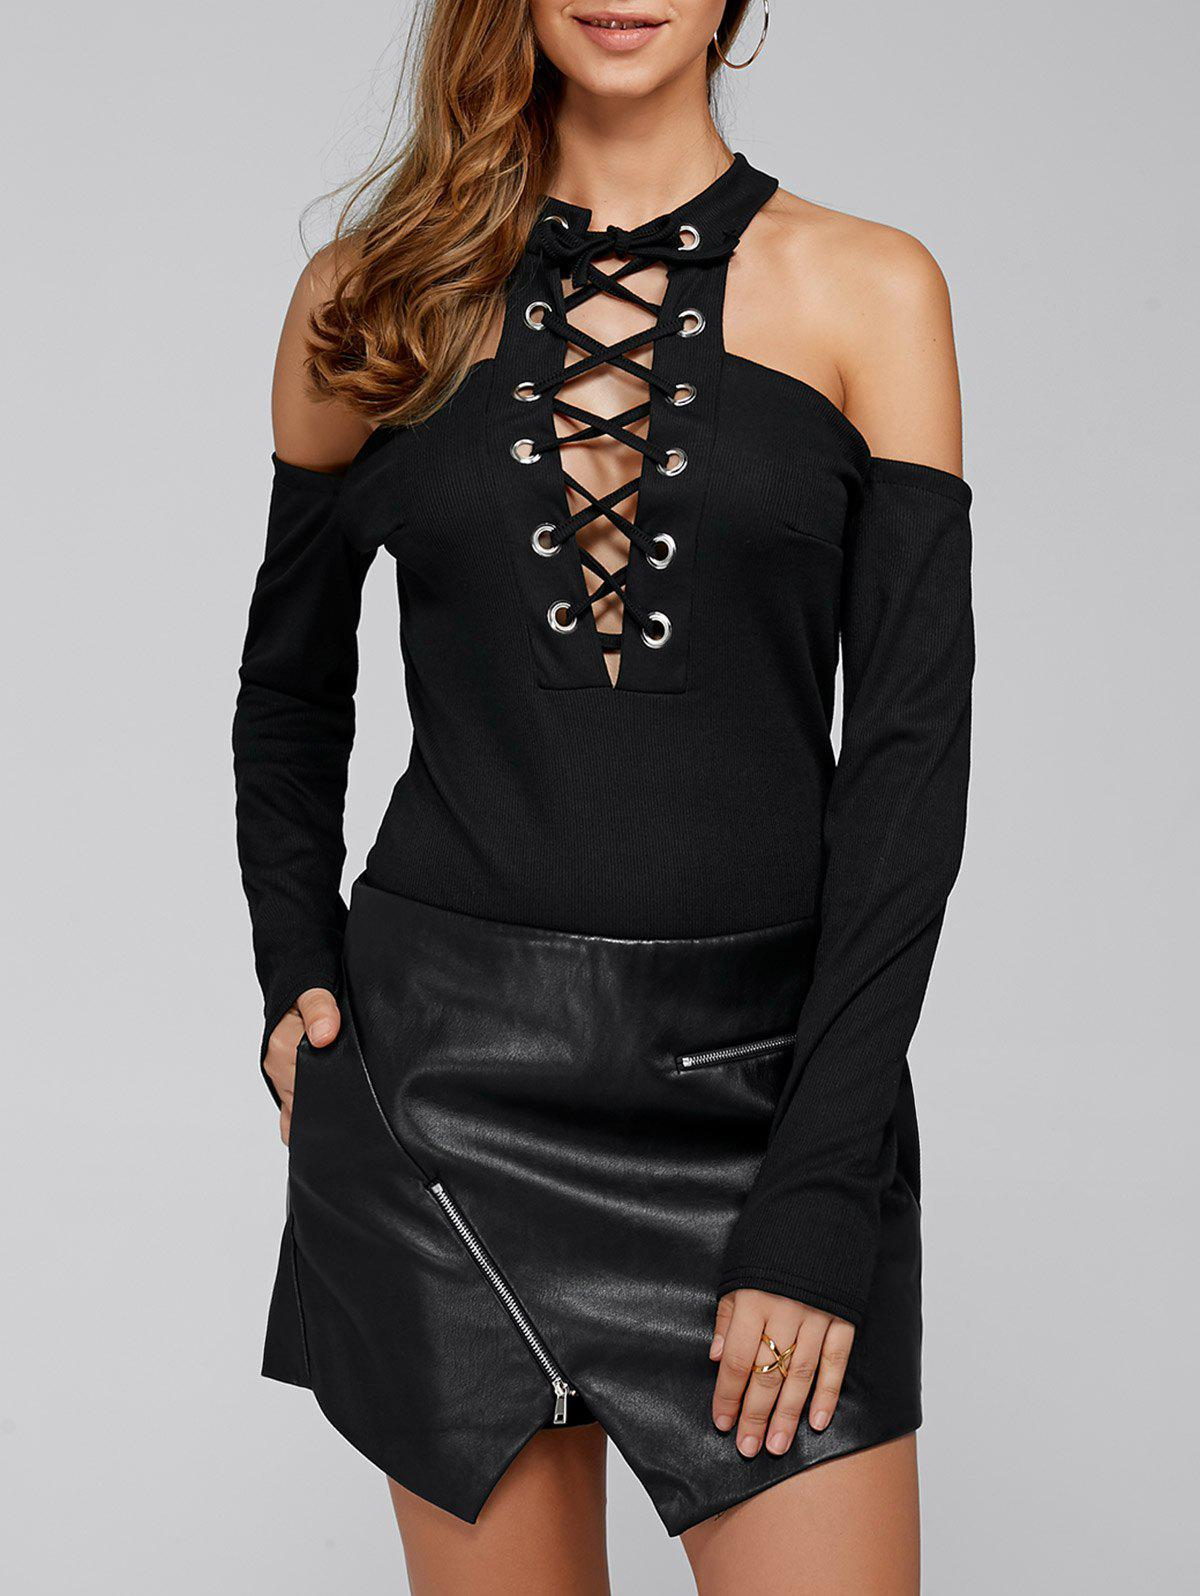 Criss Cross Plunging Neck Cold Shoulder Lace-Up Bodysuit criss cross lace up bodysuit